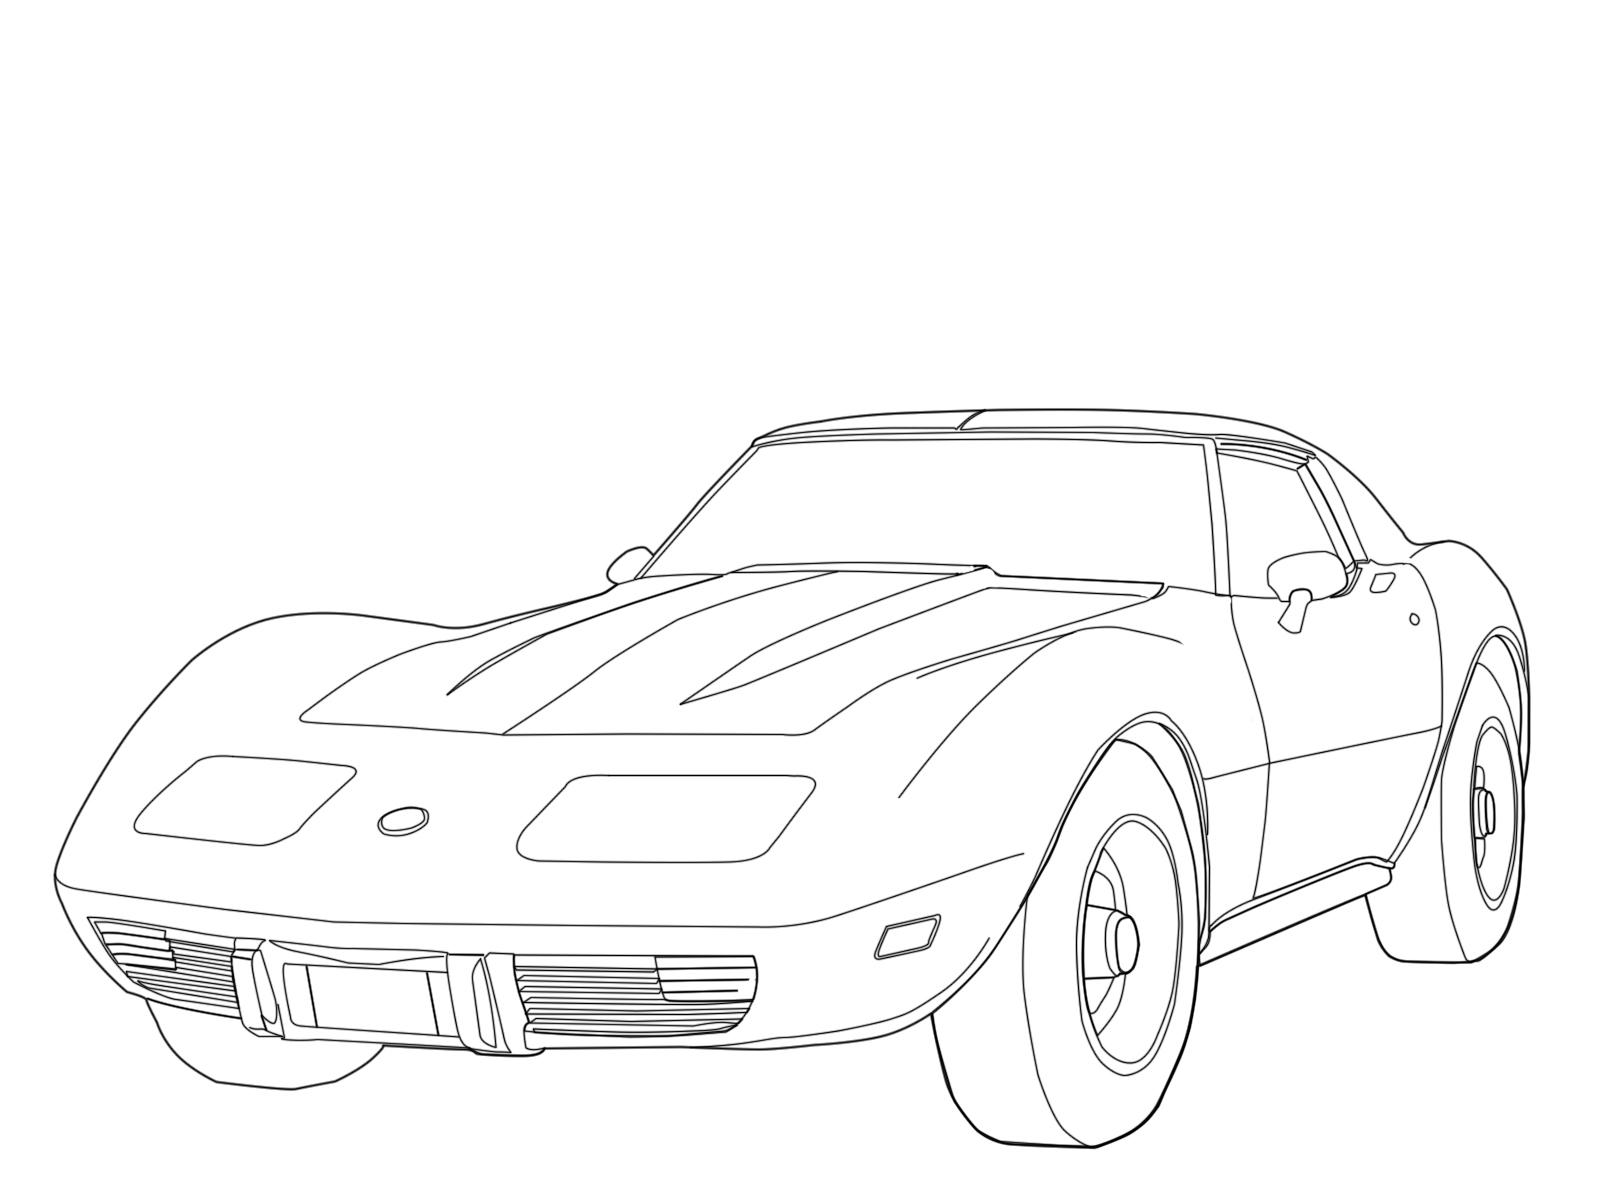 1975 Corvette By Zargil On Deviantart